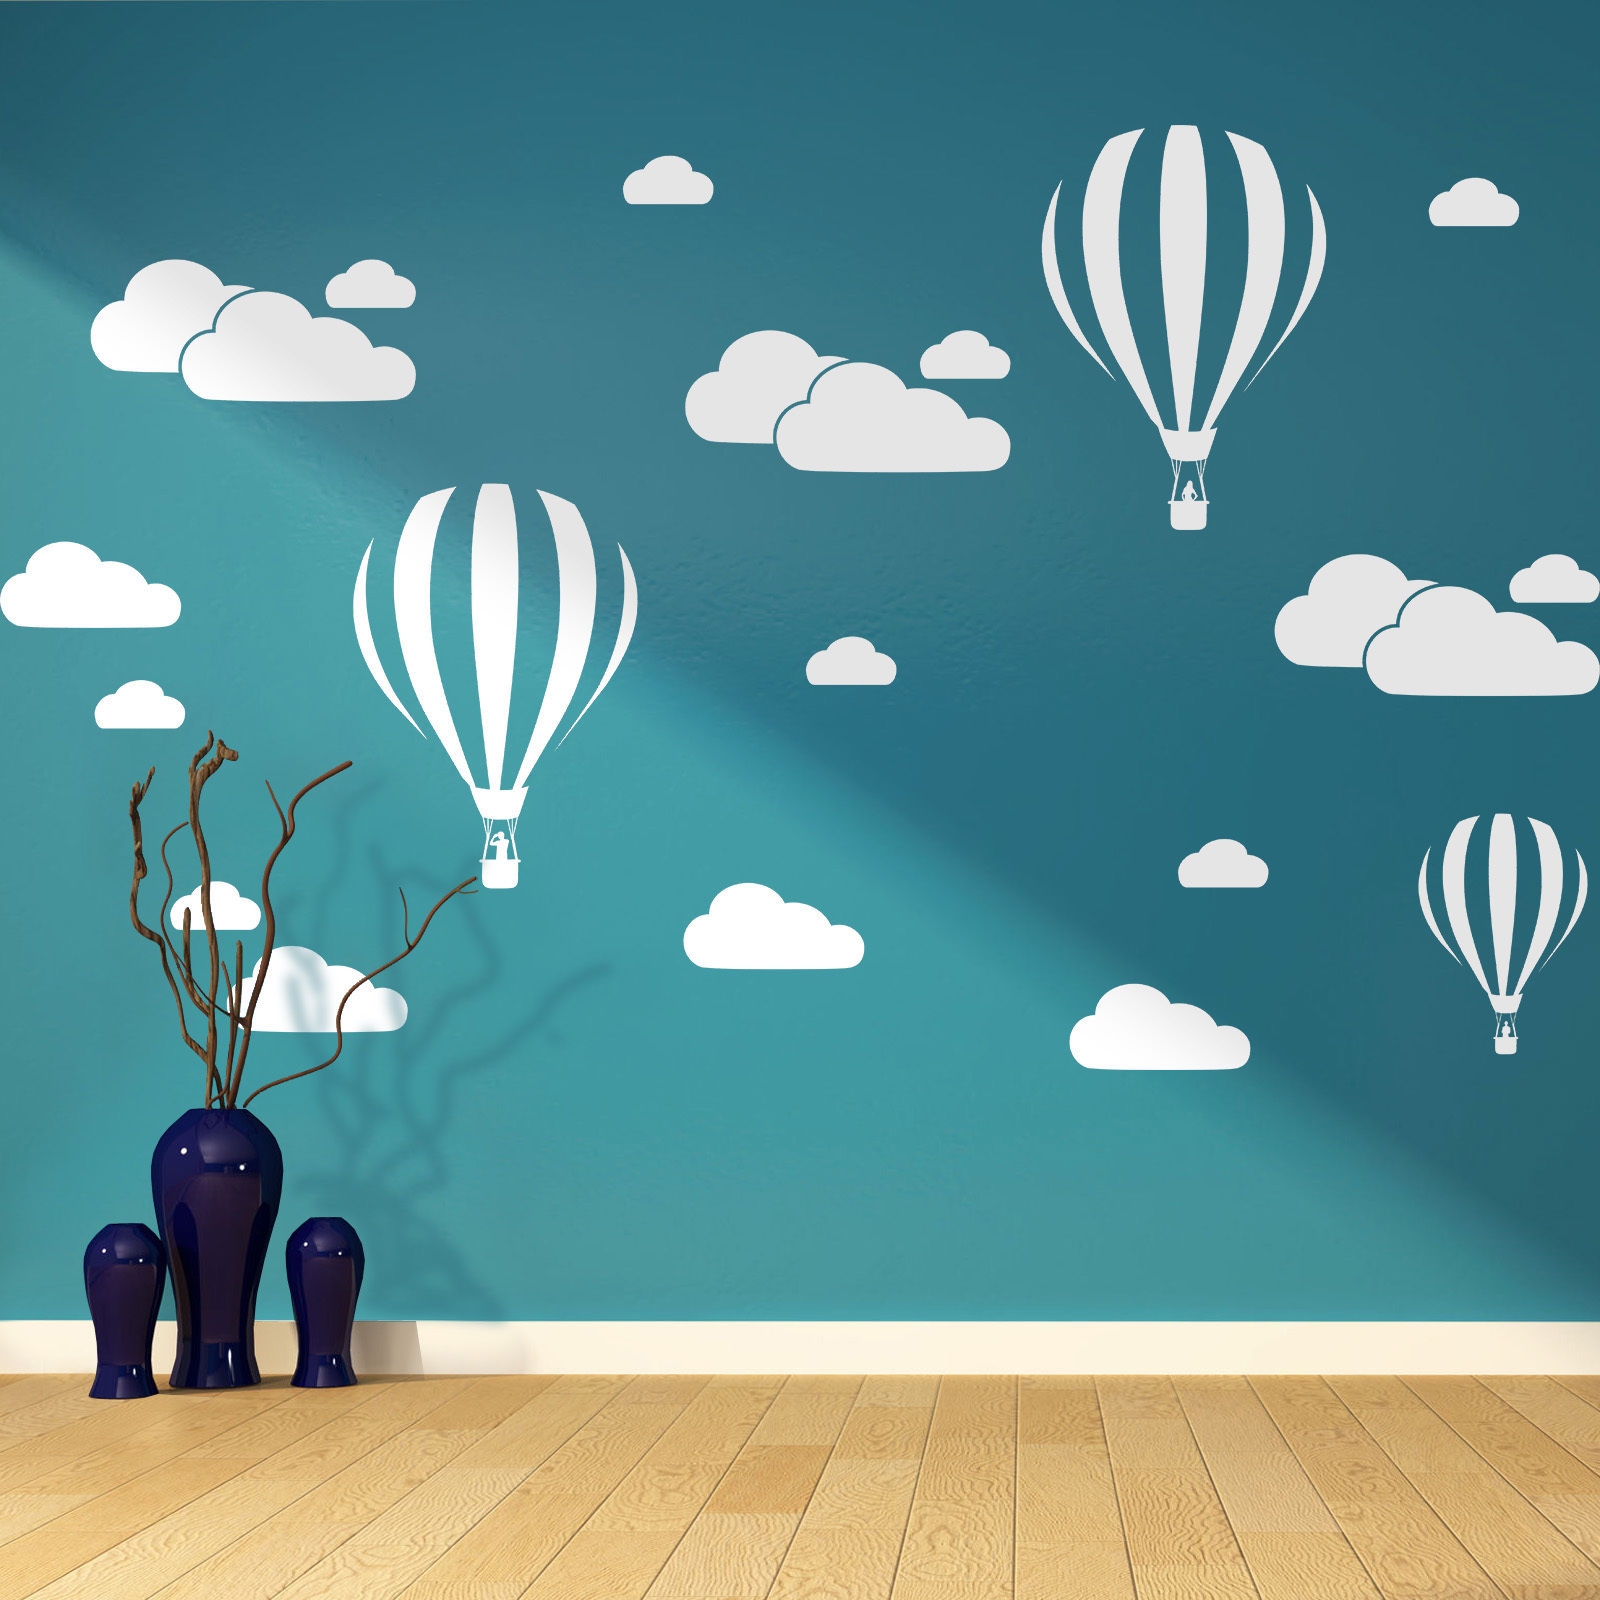 Clouds &Hot Air Balloons Nursery Kids Childs Room Vinyl Wall Art Sticker Decal free shipping(China (Mainland))